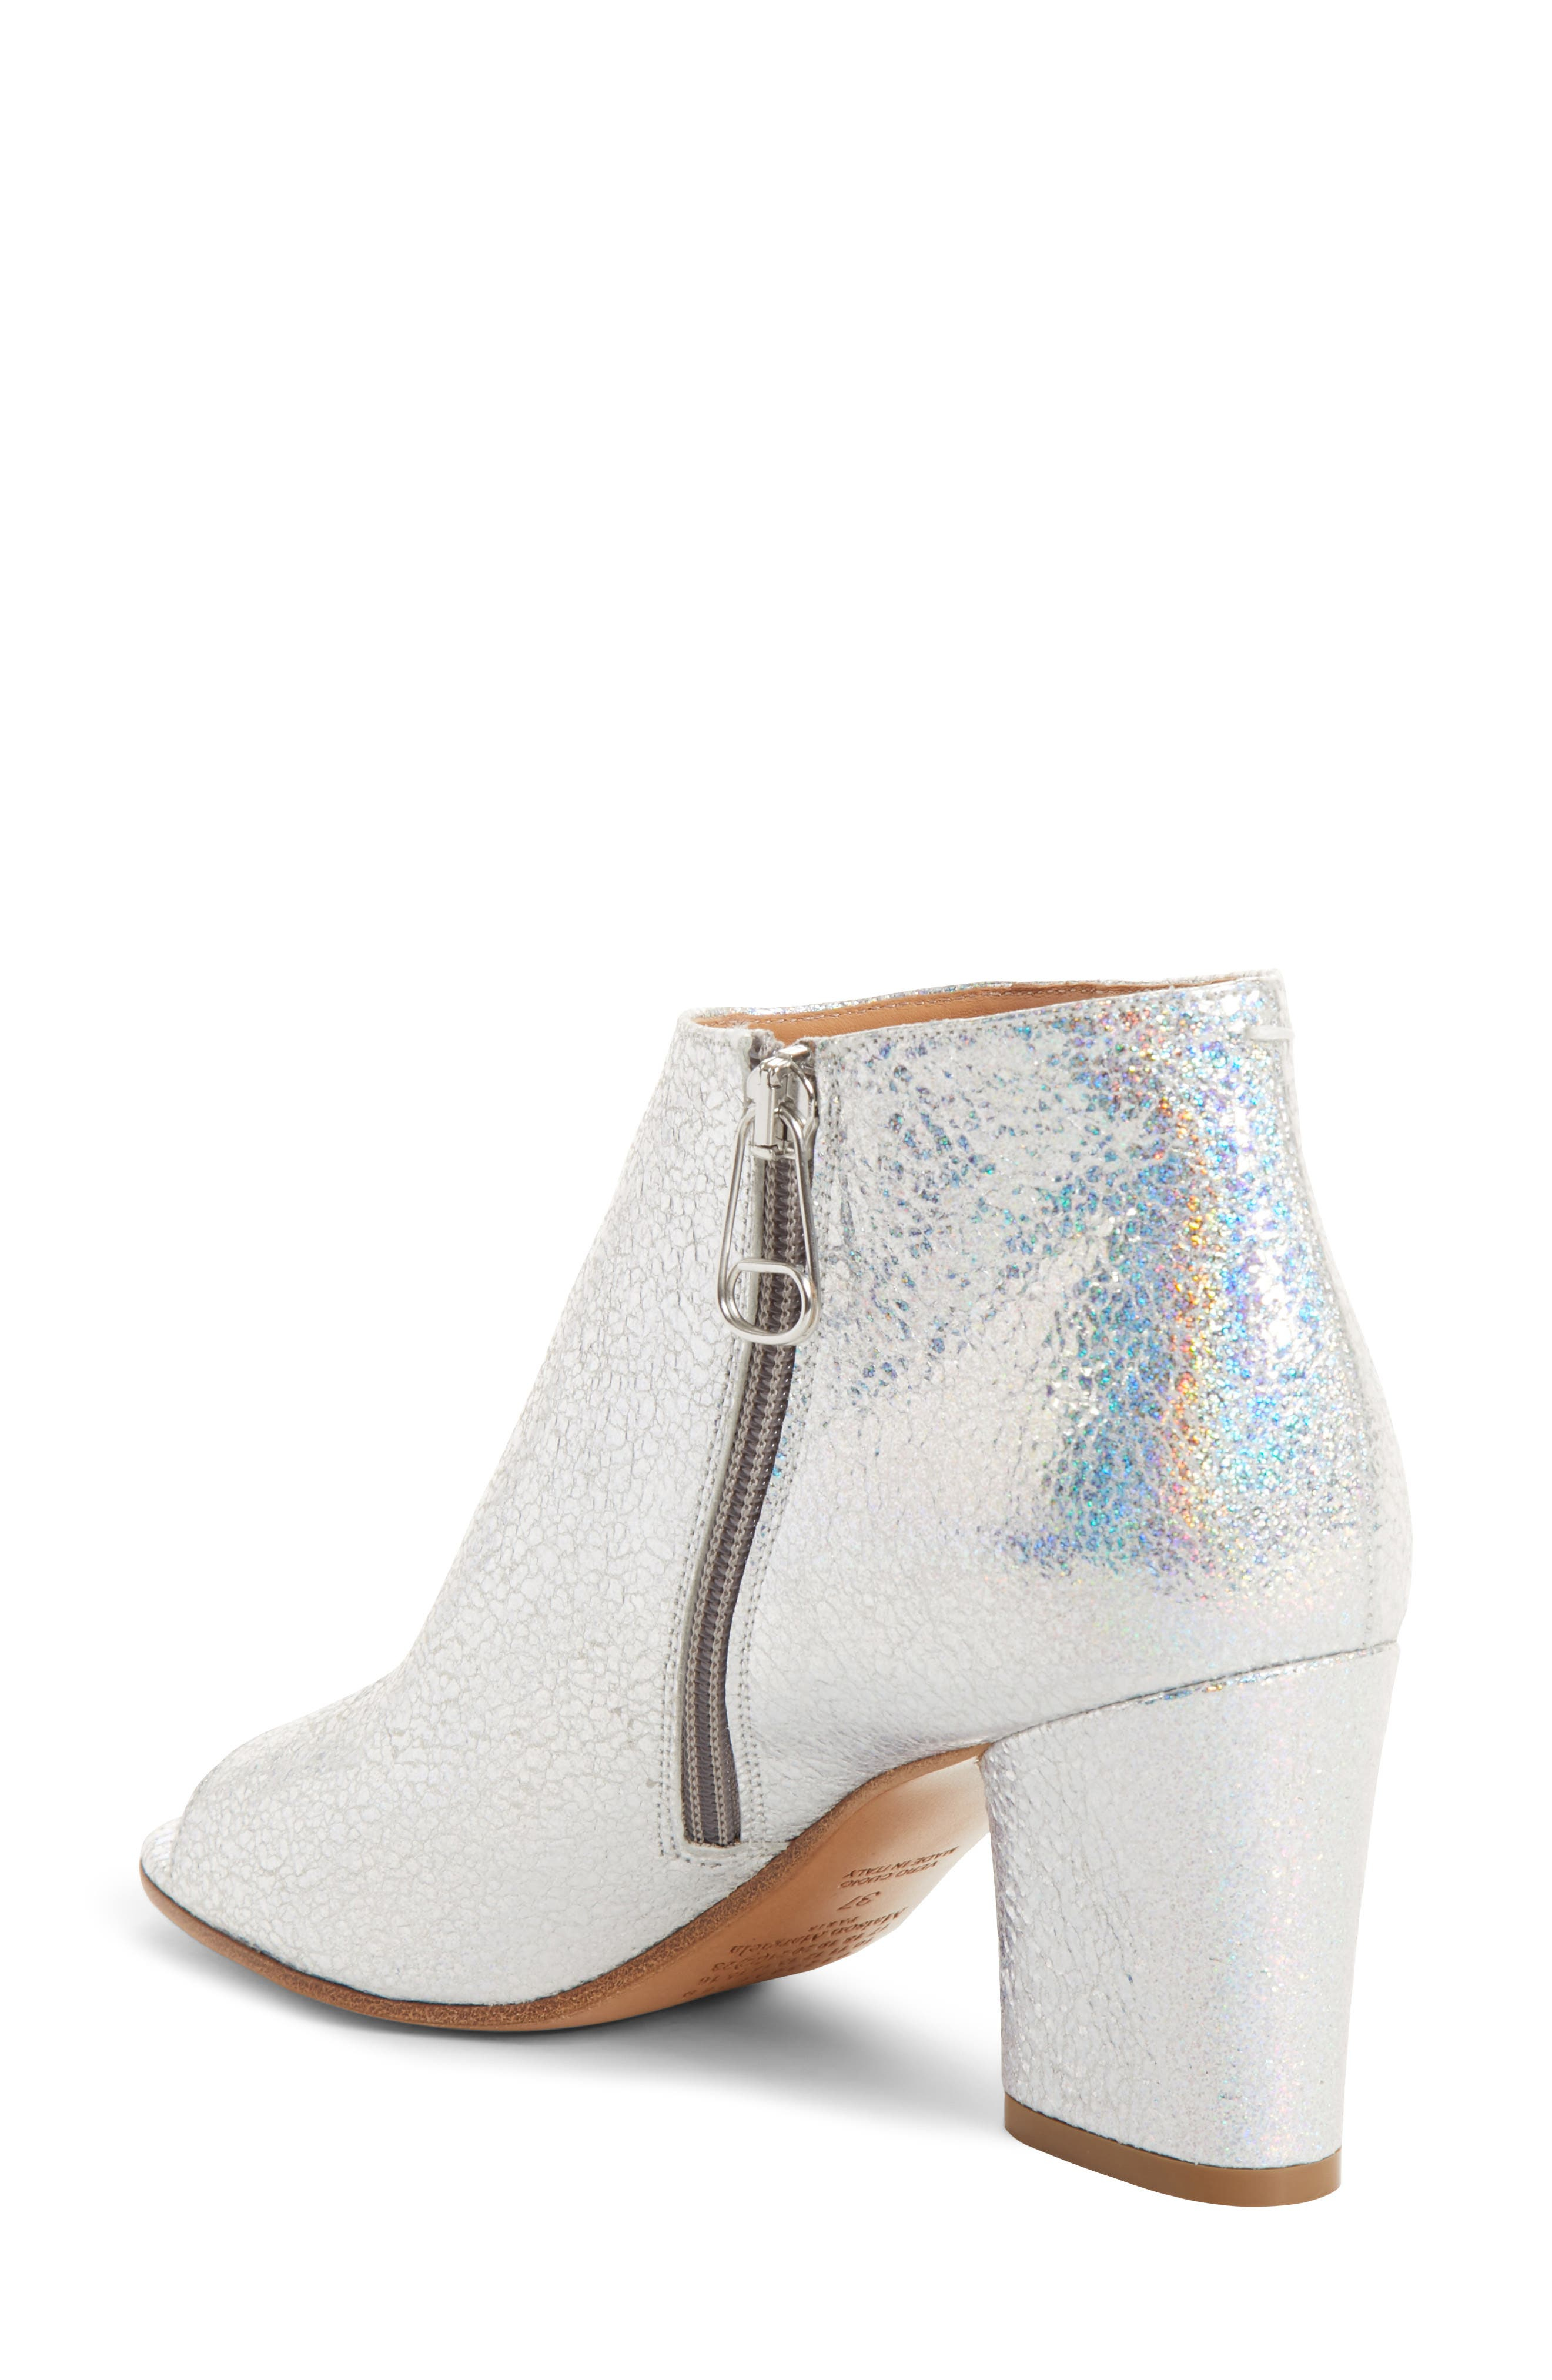 Metallic Open Toe Ankle Boot,                             Alternate thumbnail 2, color,                             040